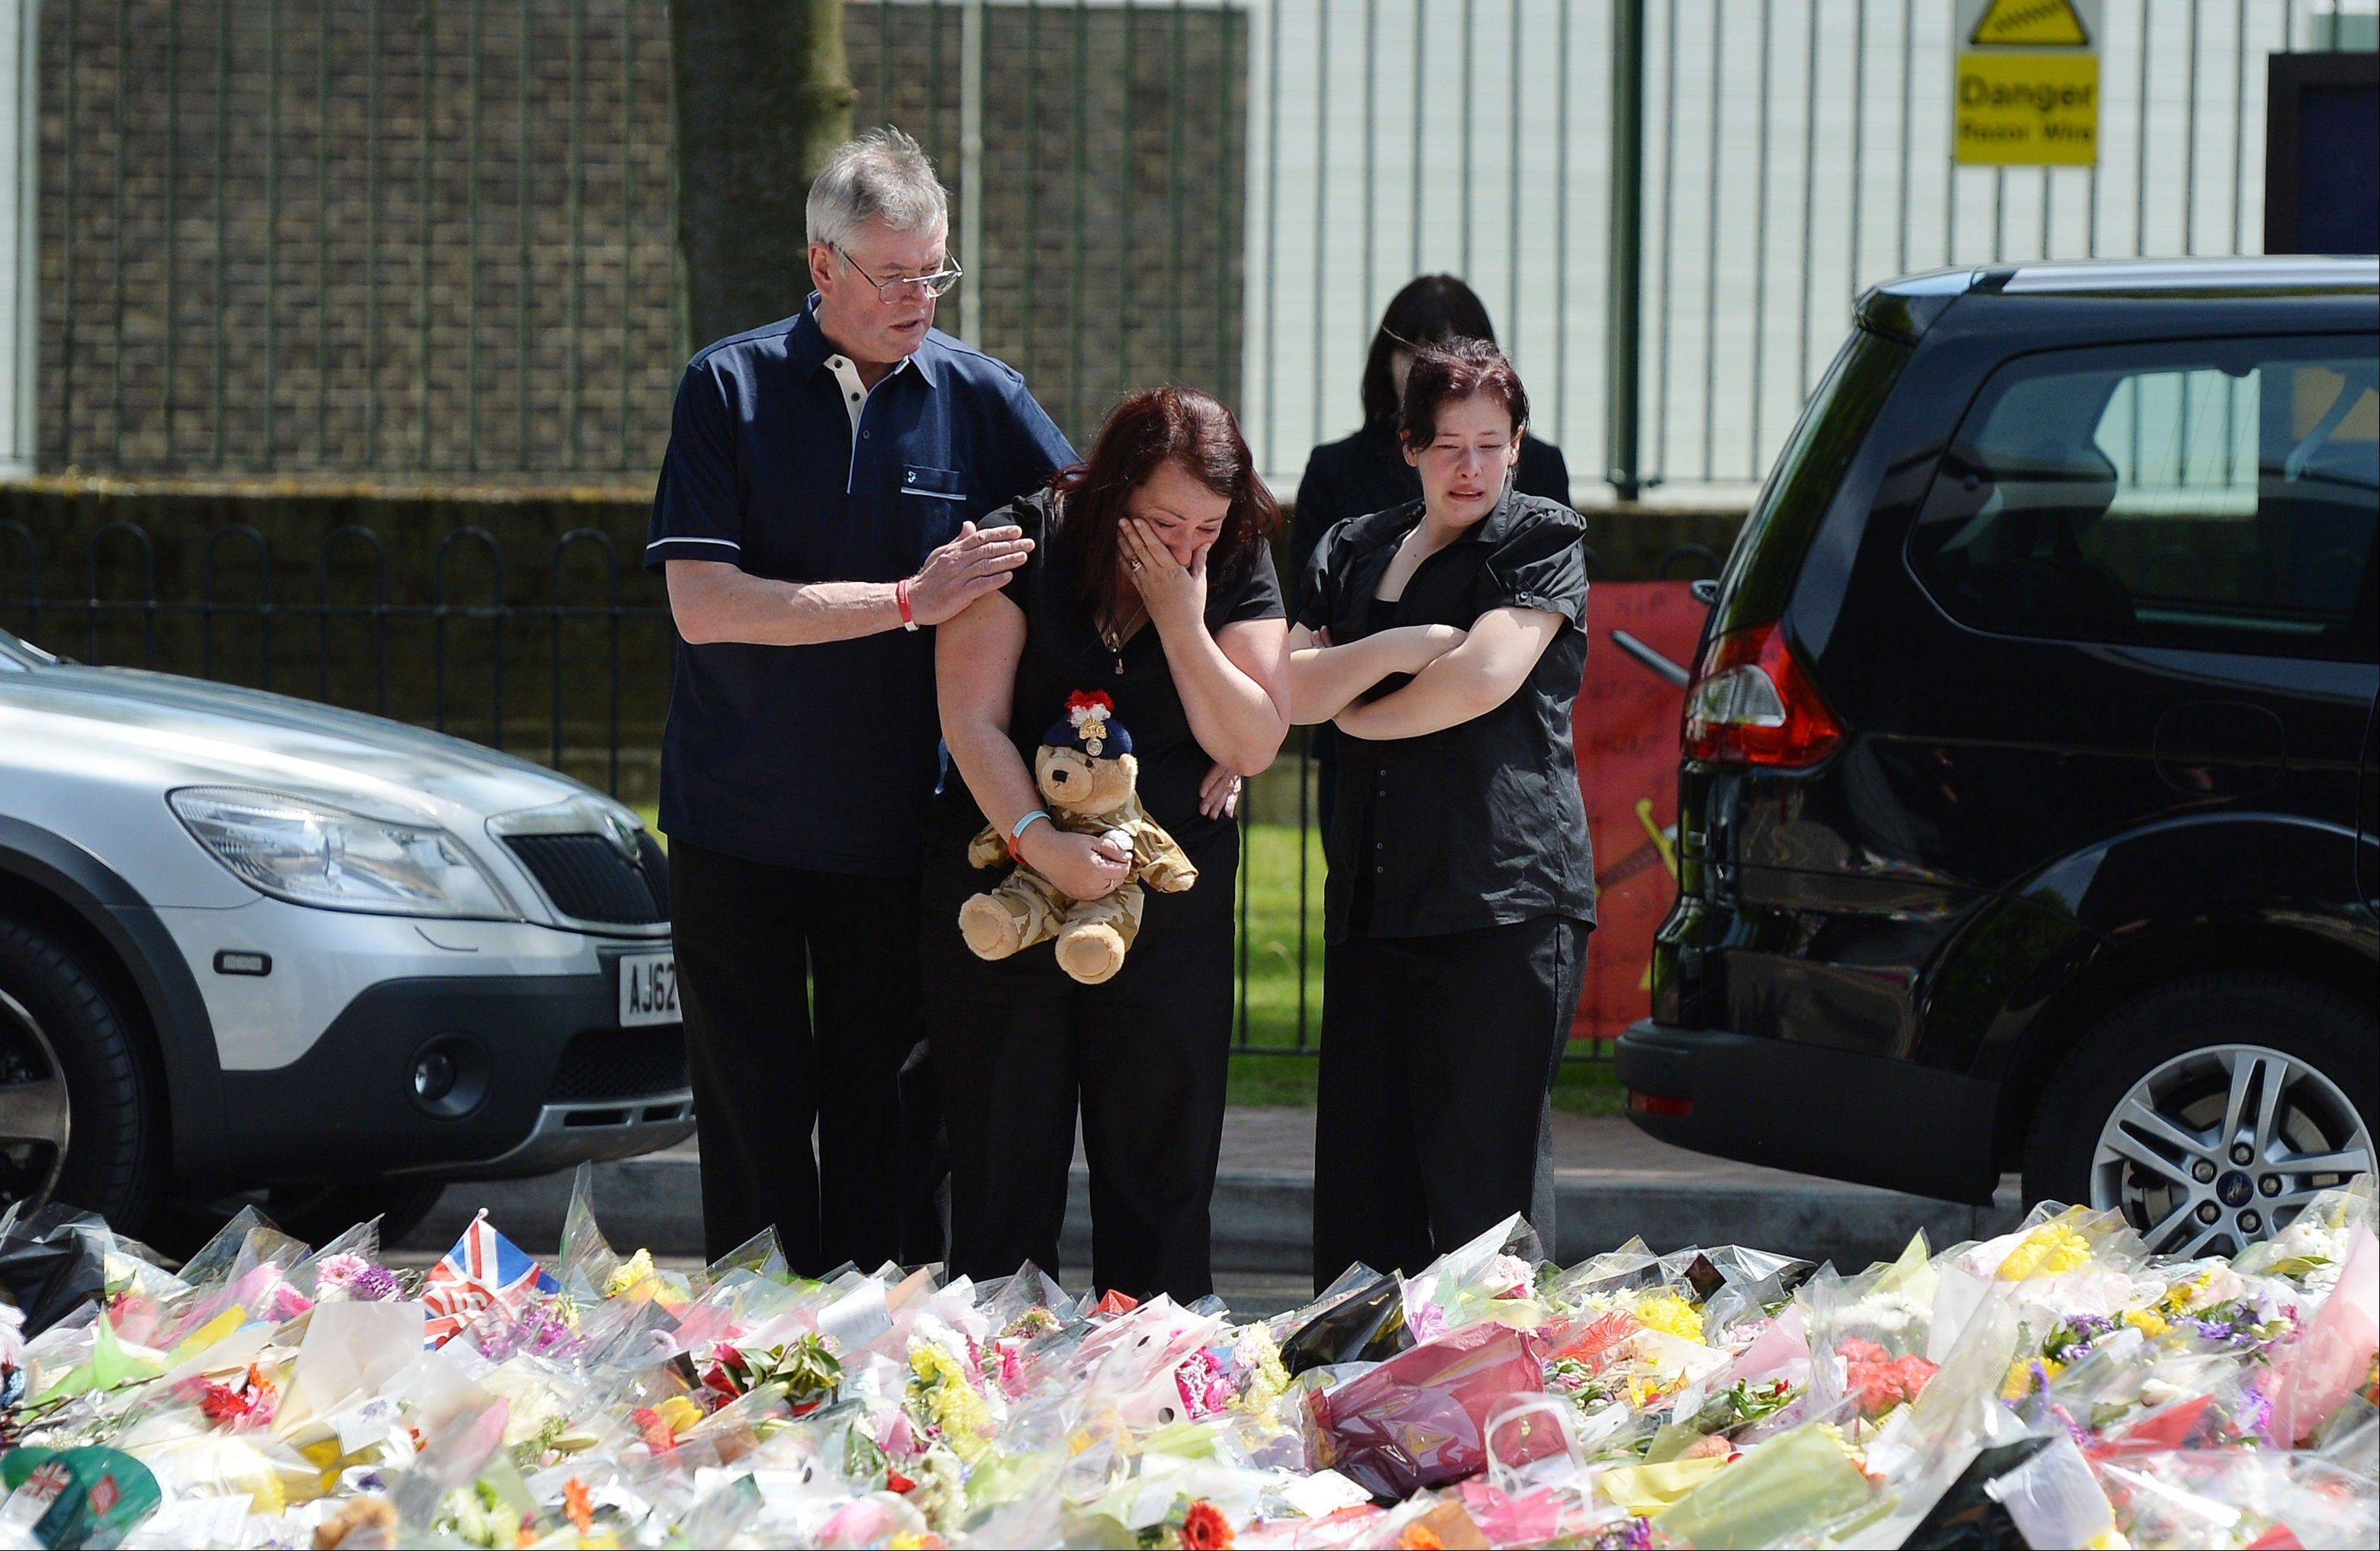 Lyn Rigby, mother of Drummer Lee Rigby, holding a teddy bear joins other family members as they look at floral tributes outside Woolwich Barracks left by well wishers as they visited the scene of the 25-year-old soldier's murder in Woolwich, south-east London, Sunday May 26, 2013.